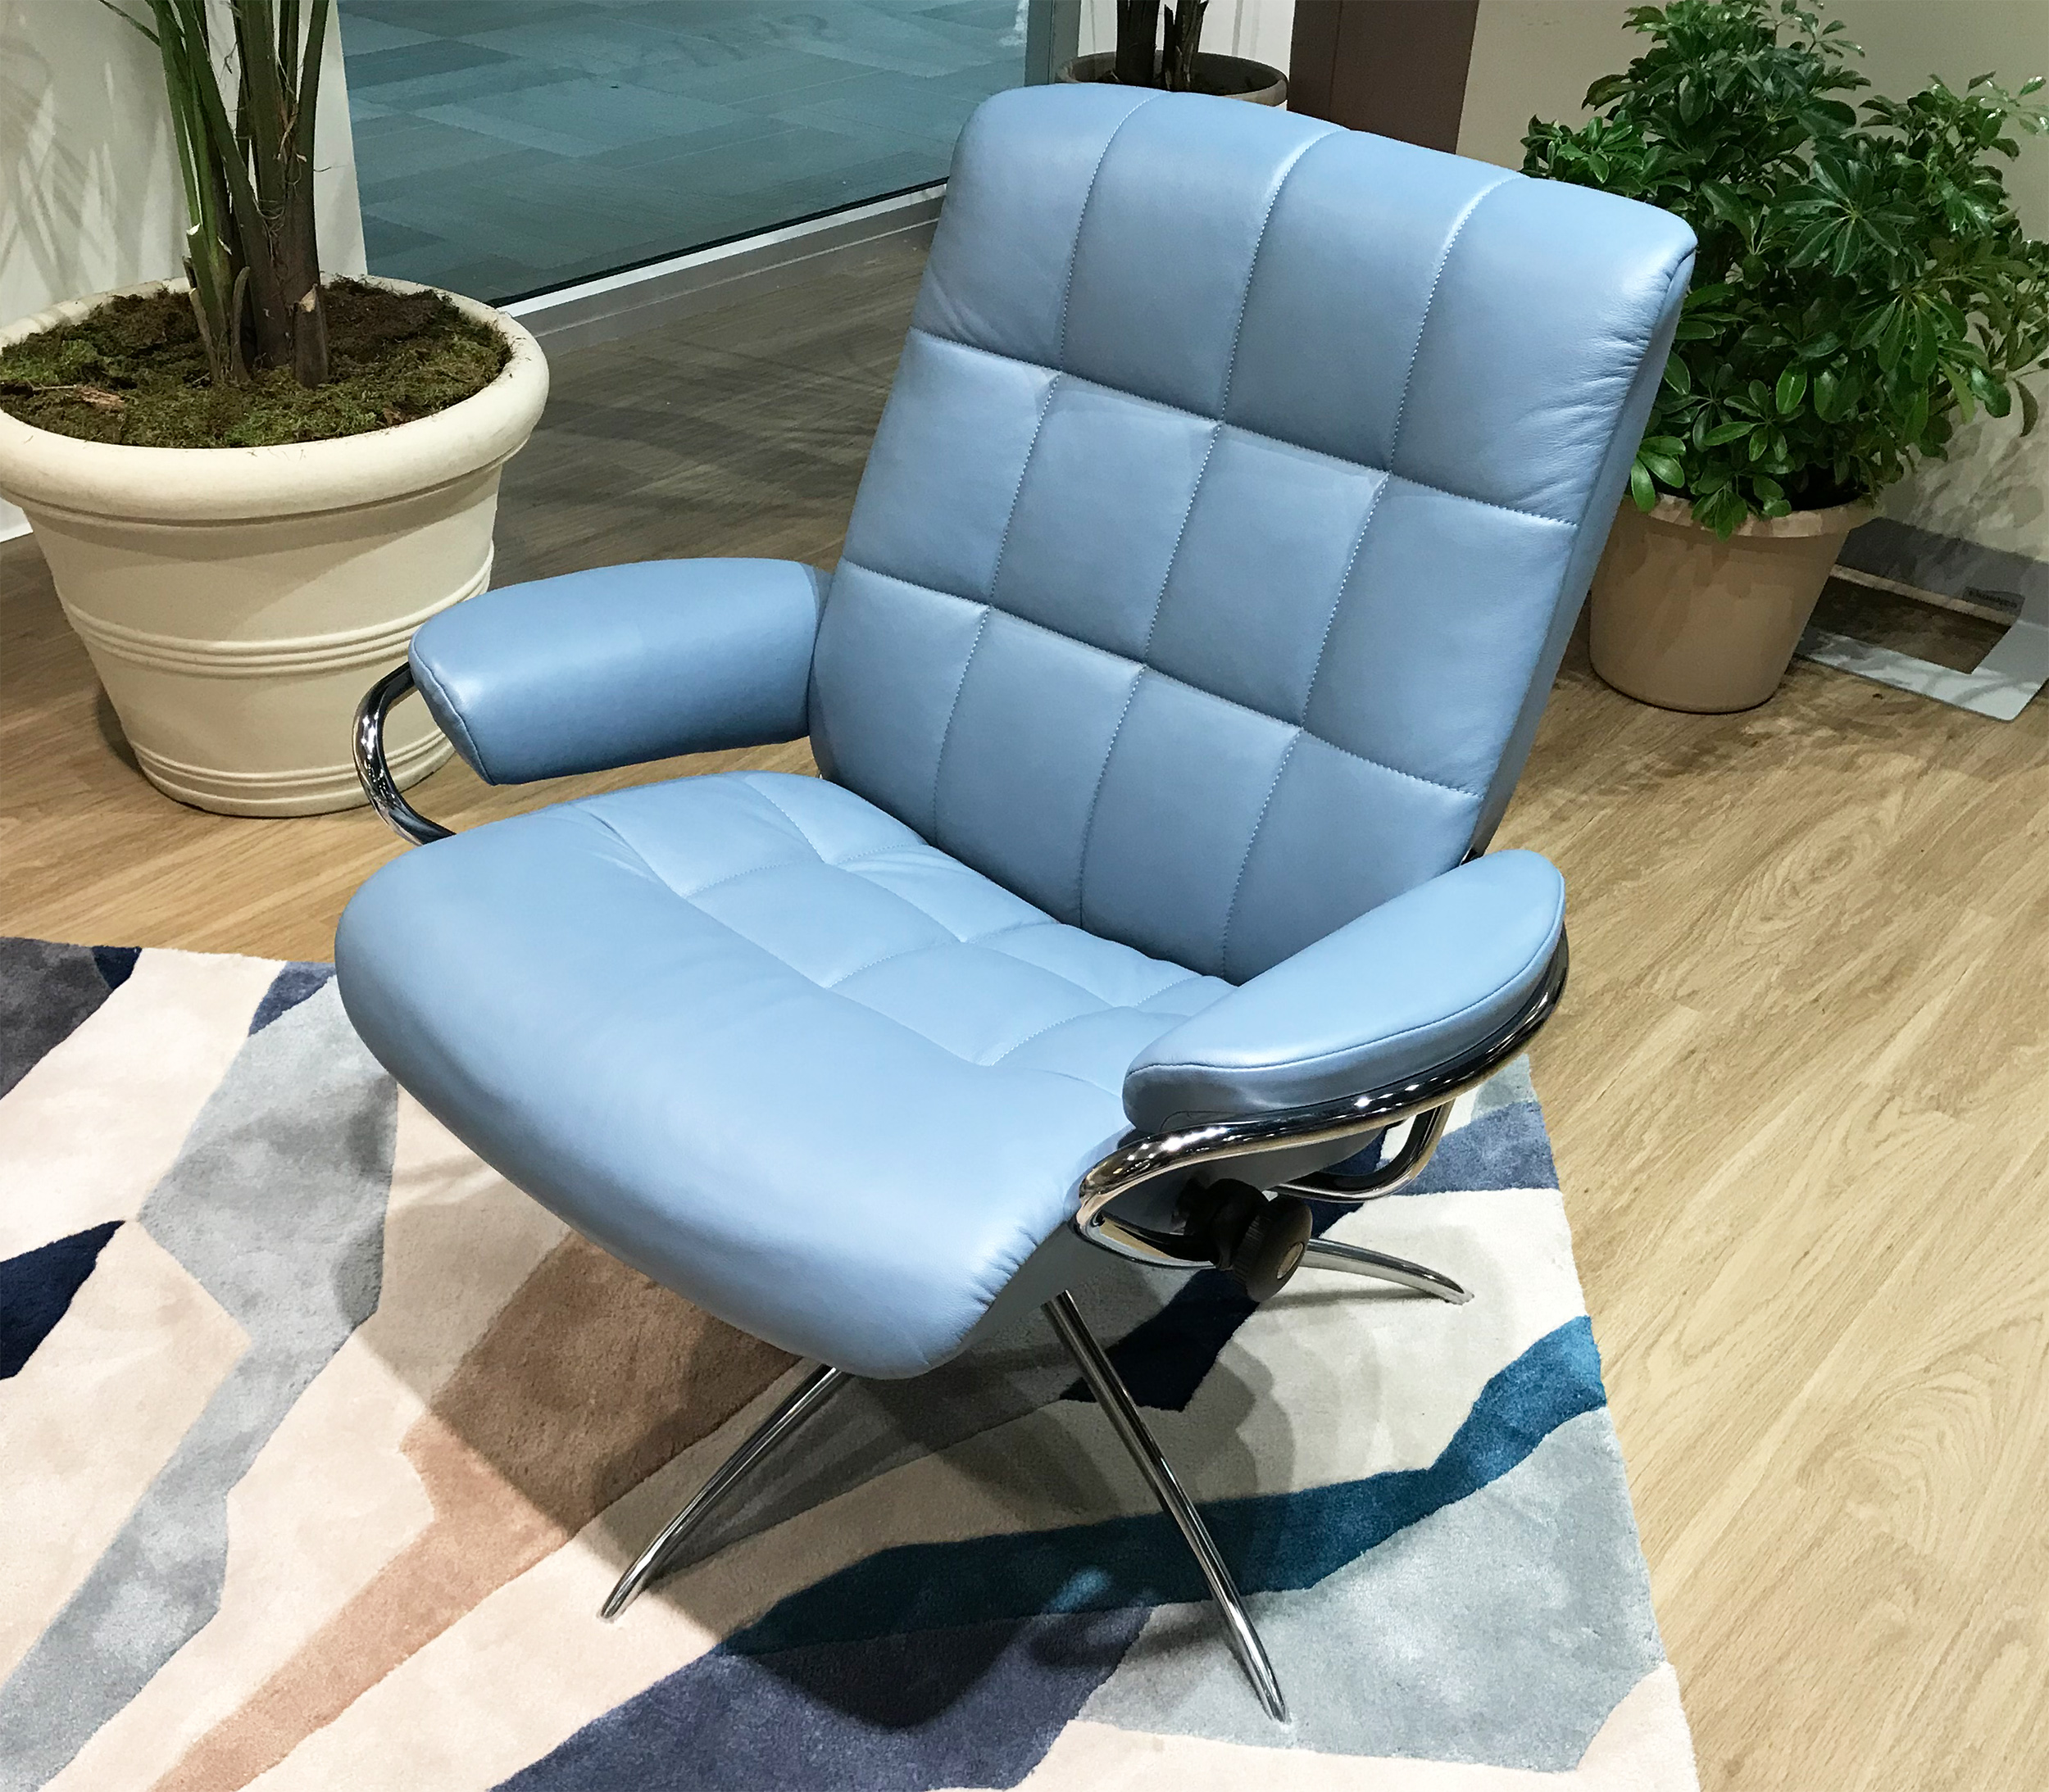 stress free chair chairs that fold into beds stressless london low back leather recliner in paloma